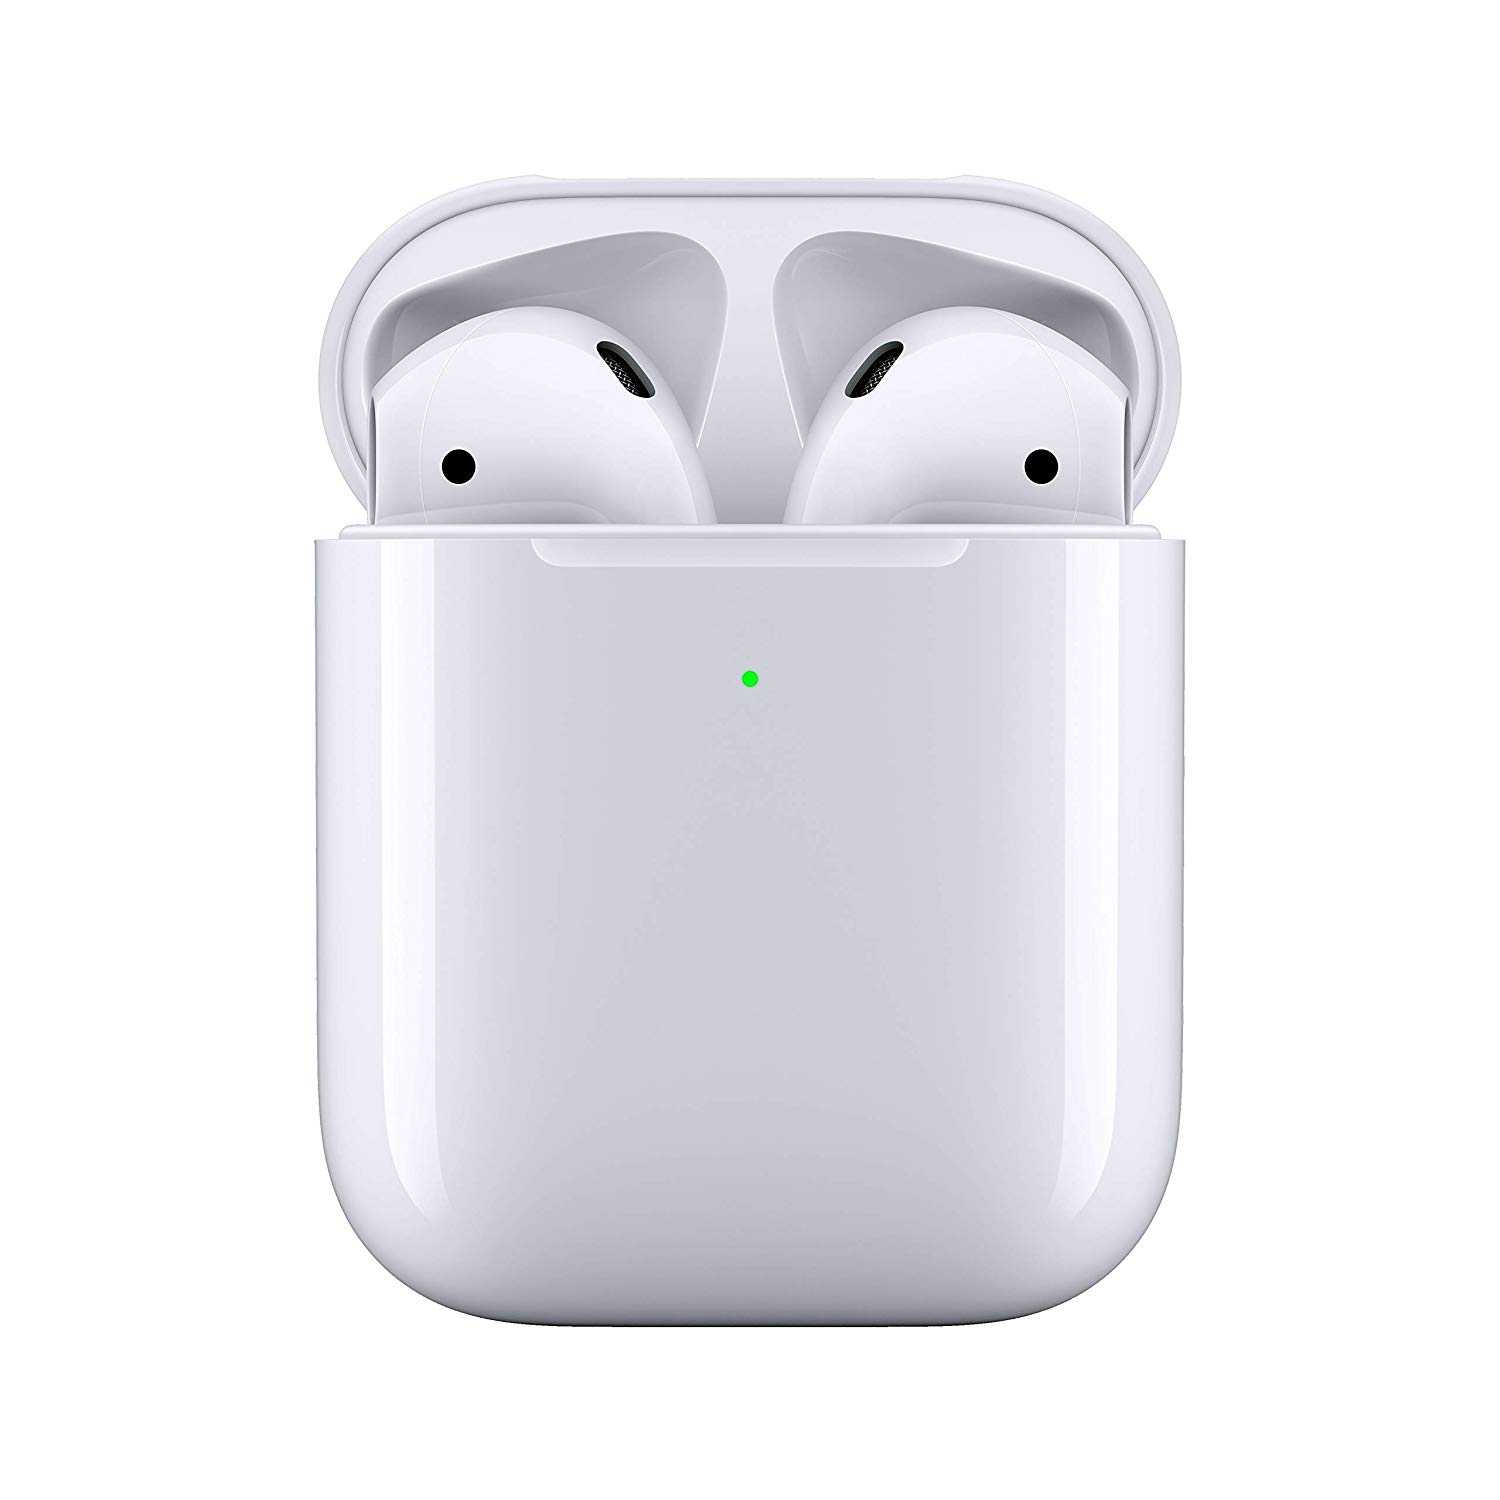 Save £40.01 on Apple Airpods with Wireless Charging Case (latest Model)